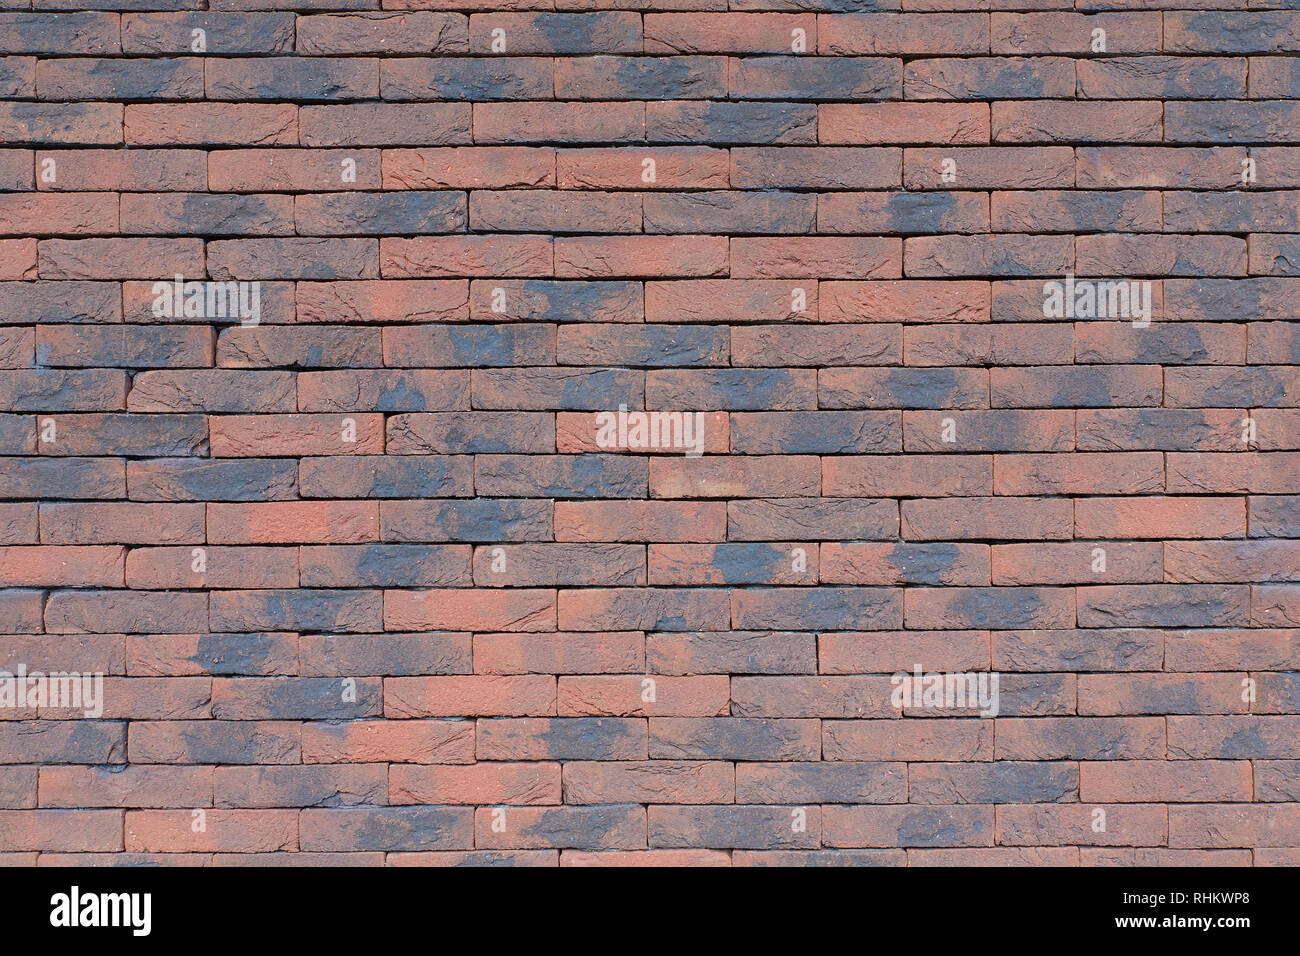 Background Brick Wall Without Cement Joints Stock Photo 234621248